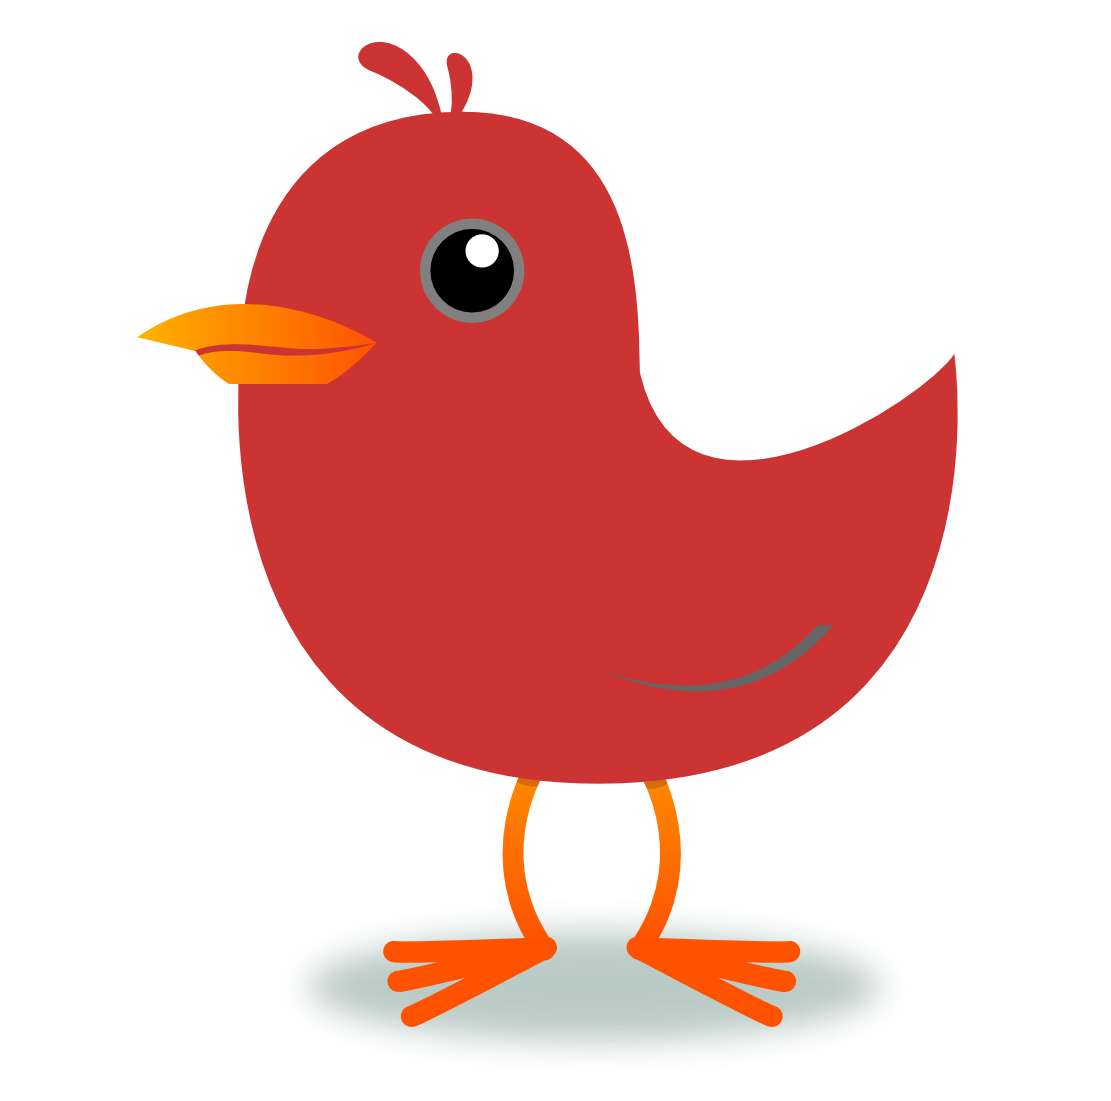 Public domain clipart bird. D chicken free stock